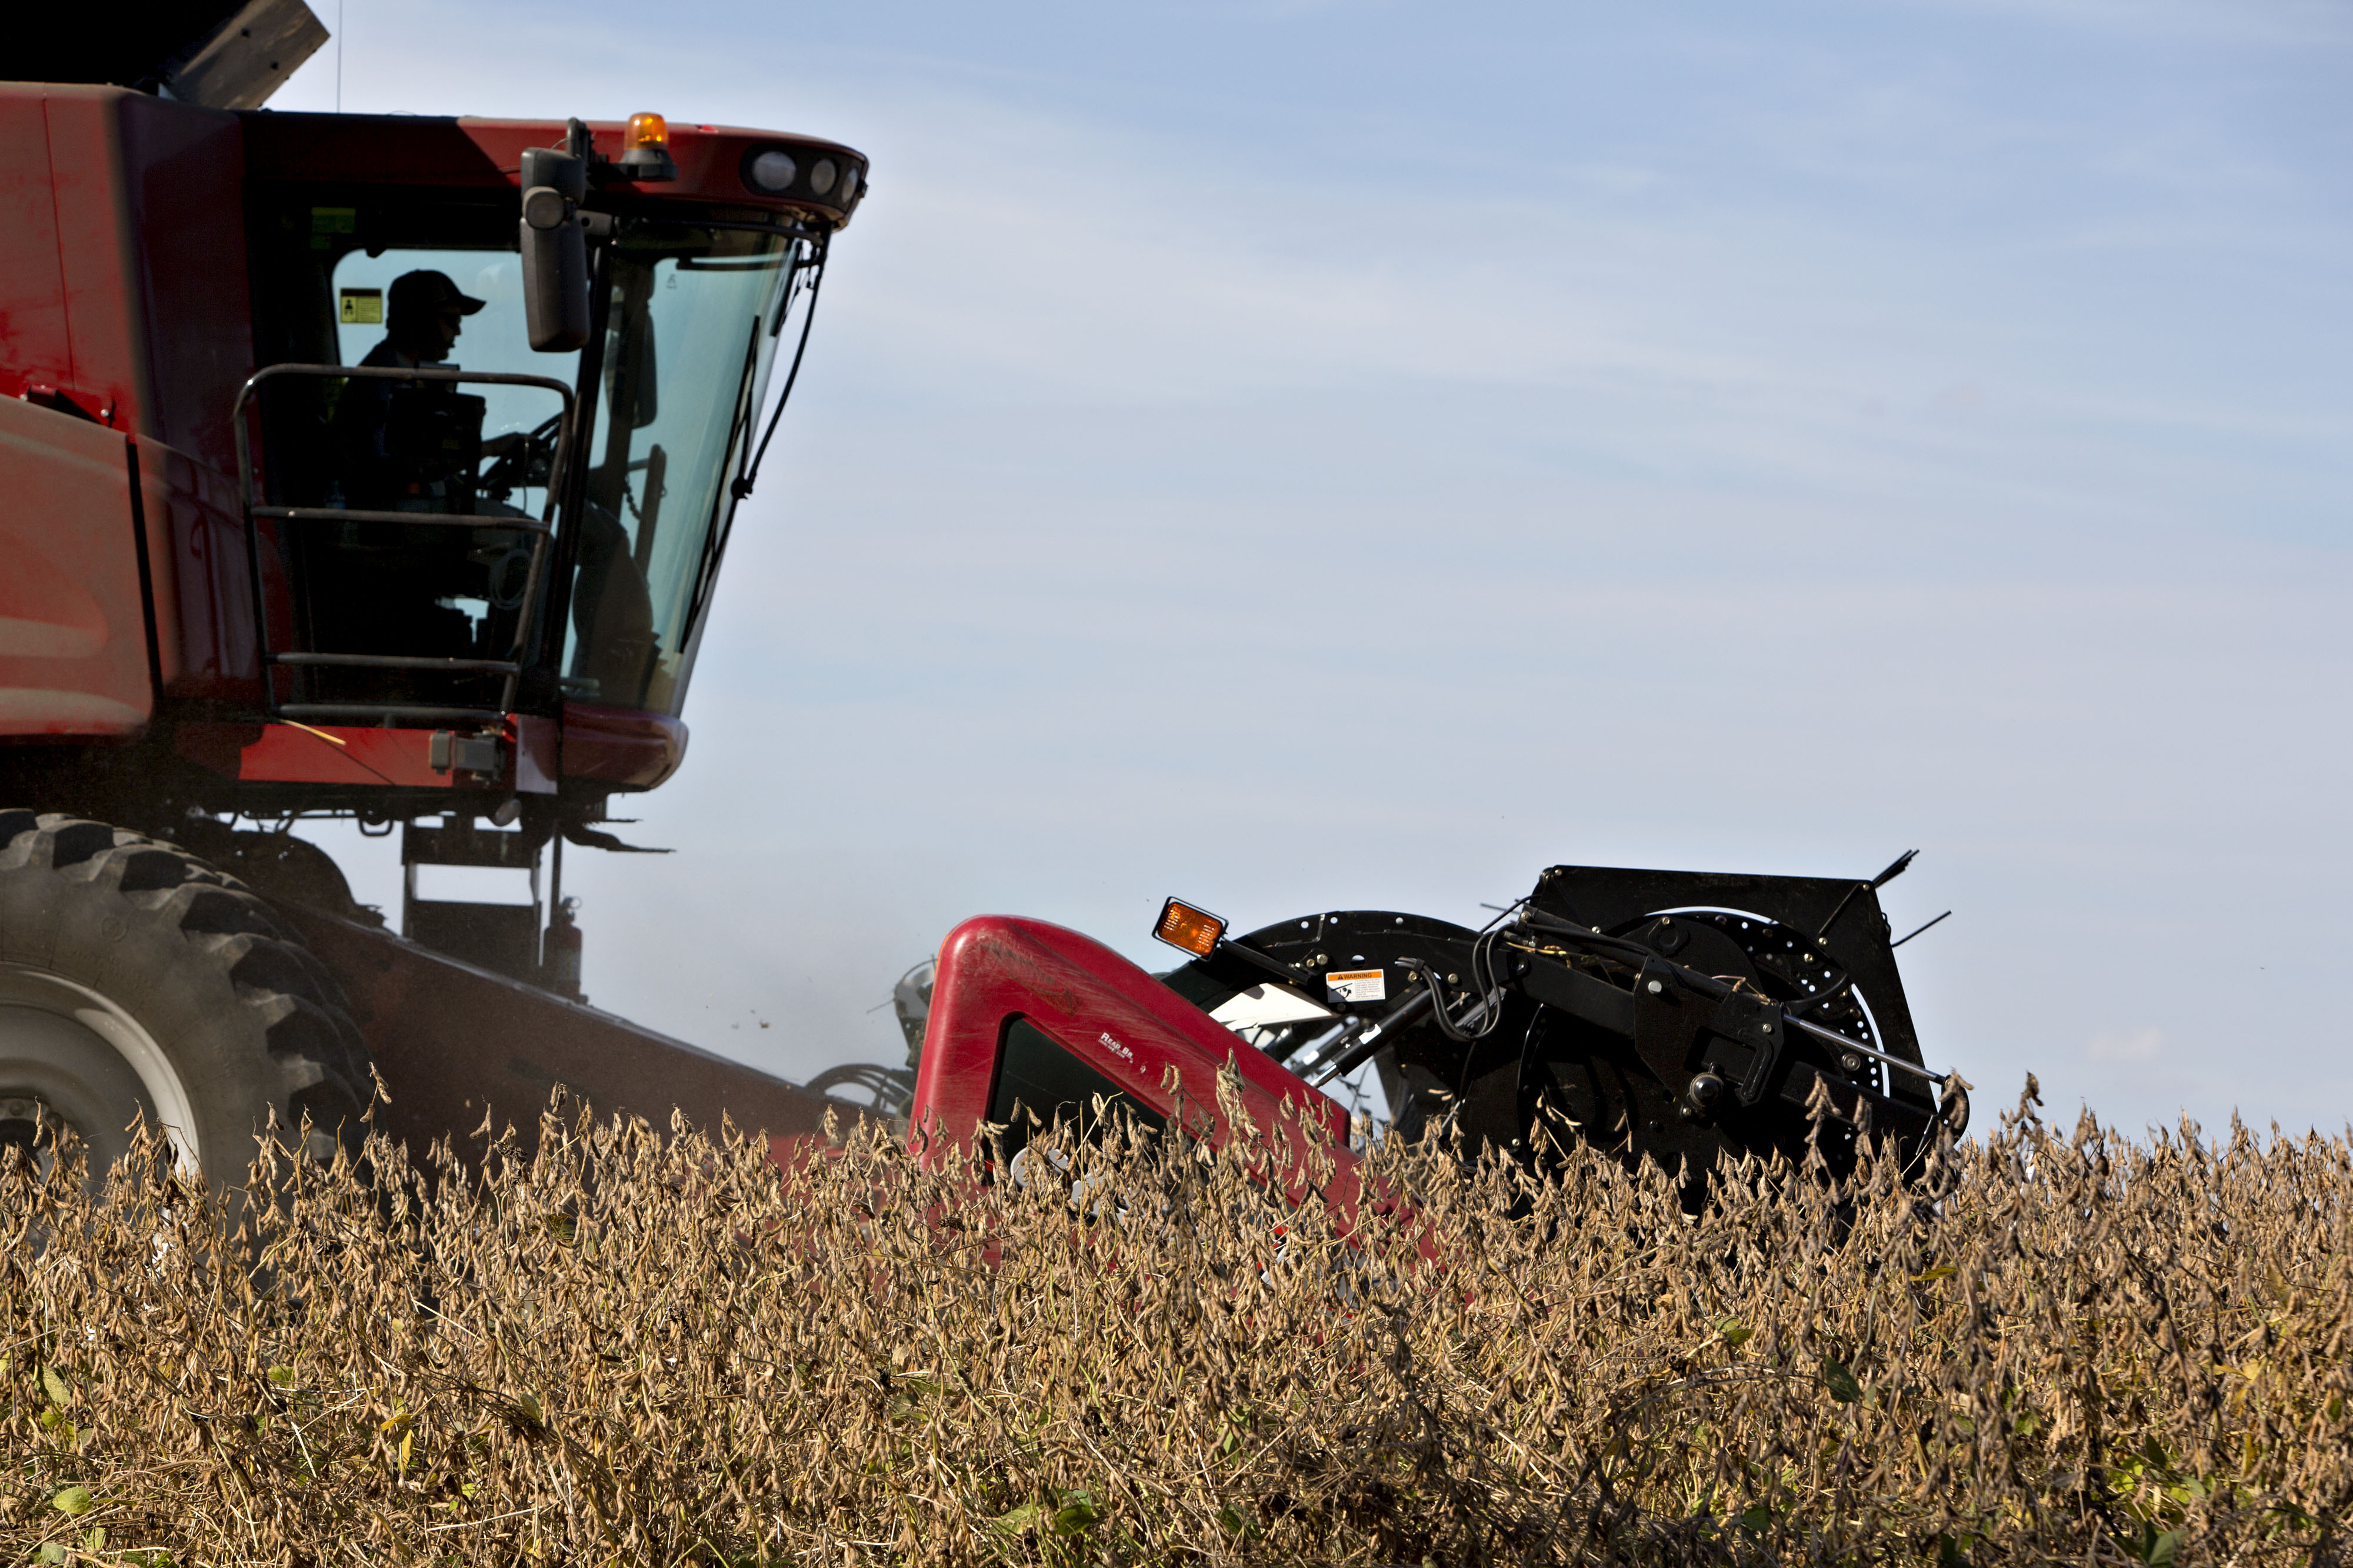 A farmer in tractor harvests soybeans in field.